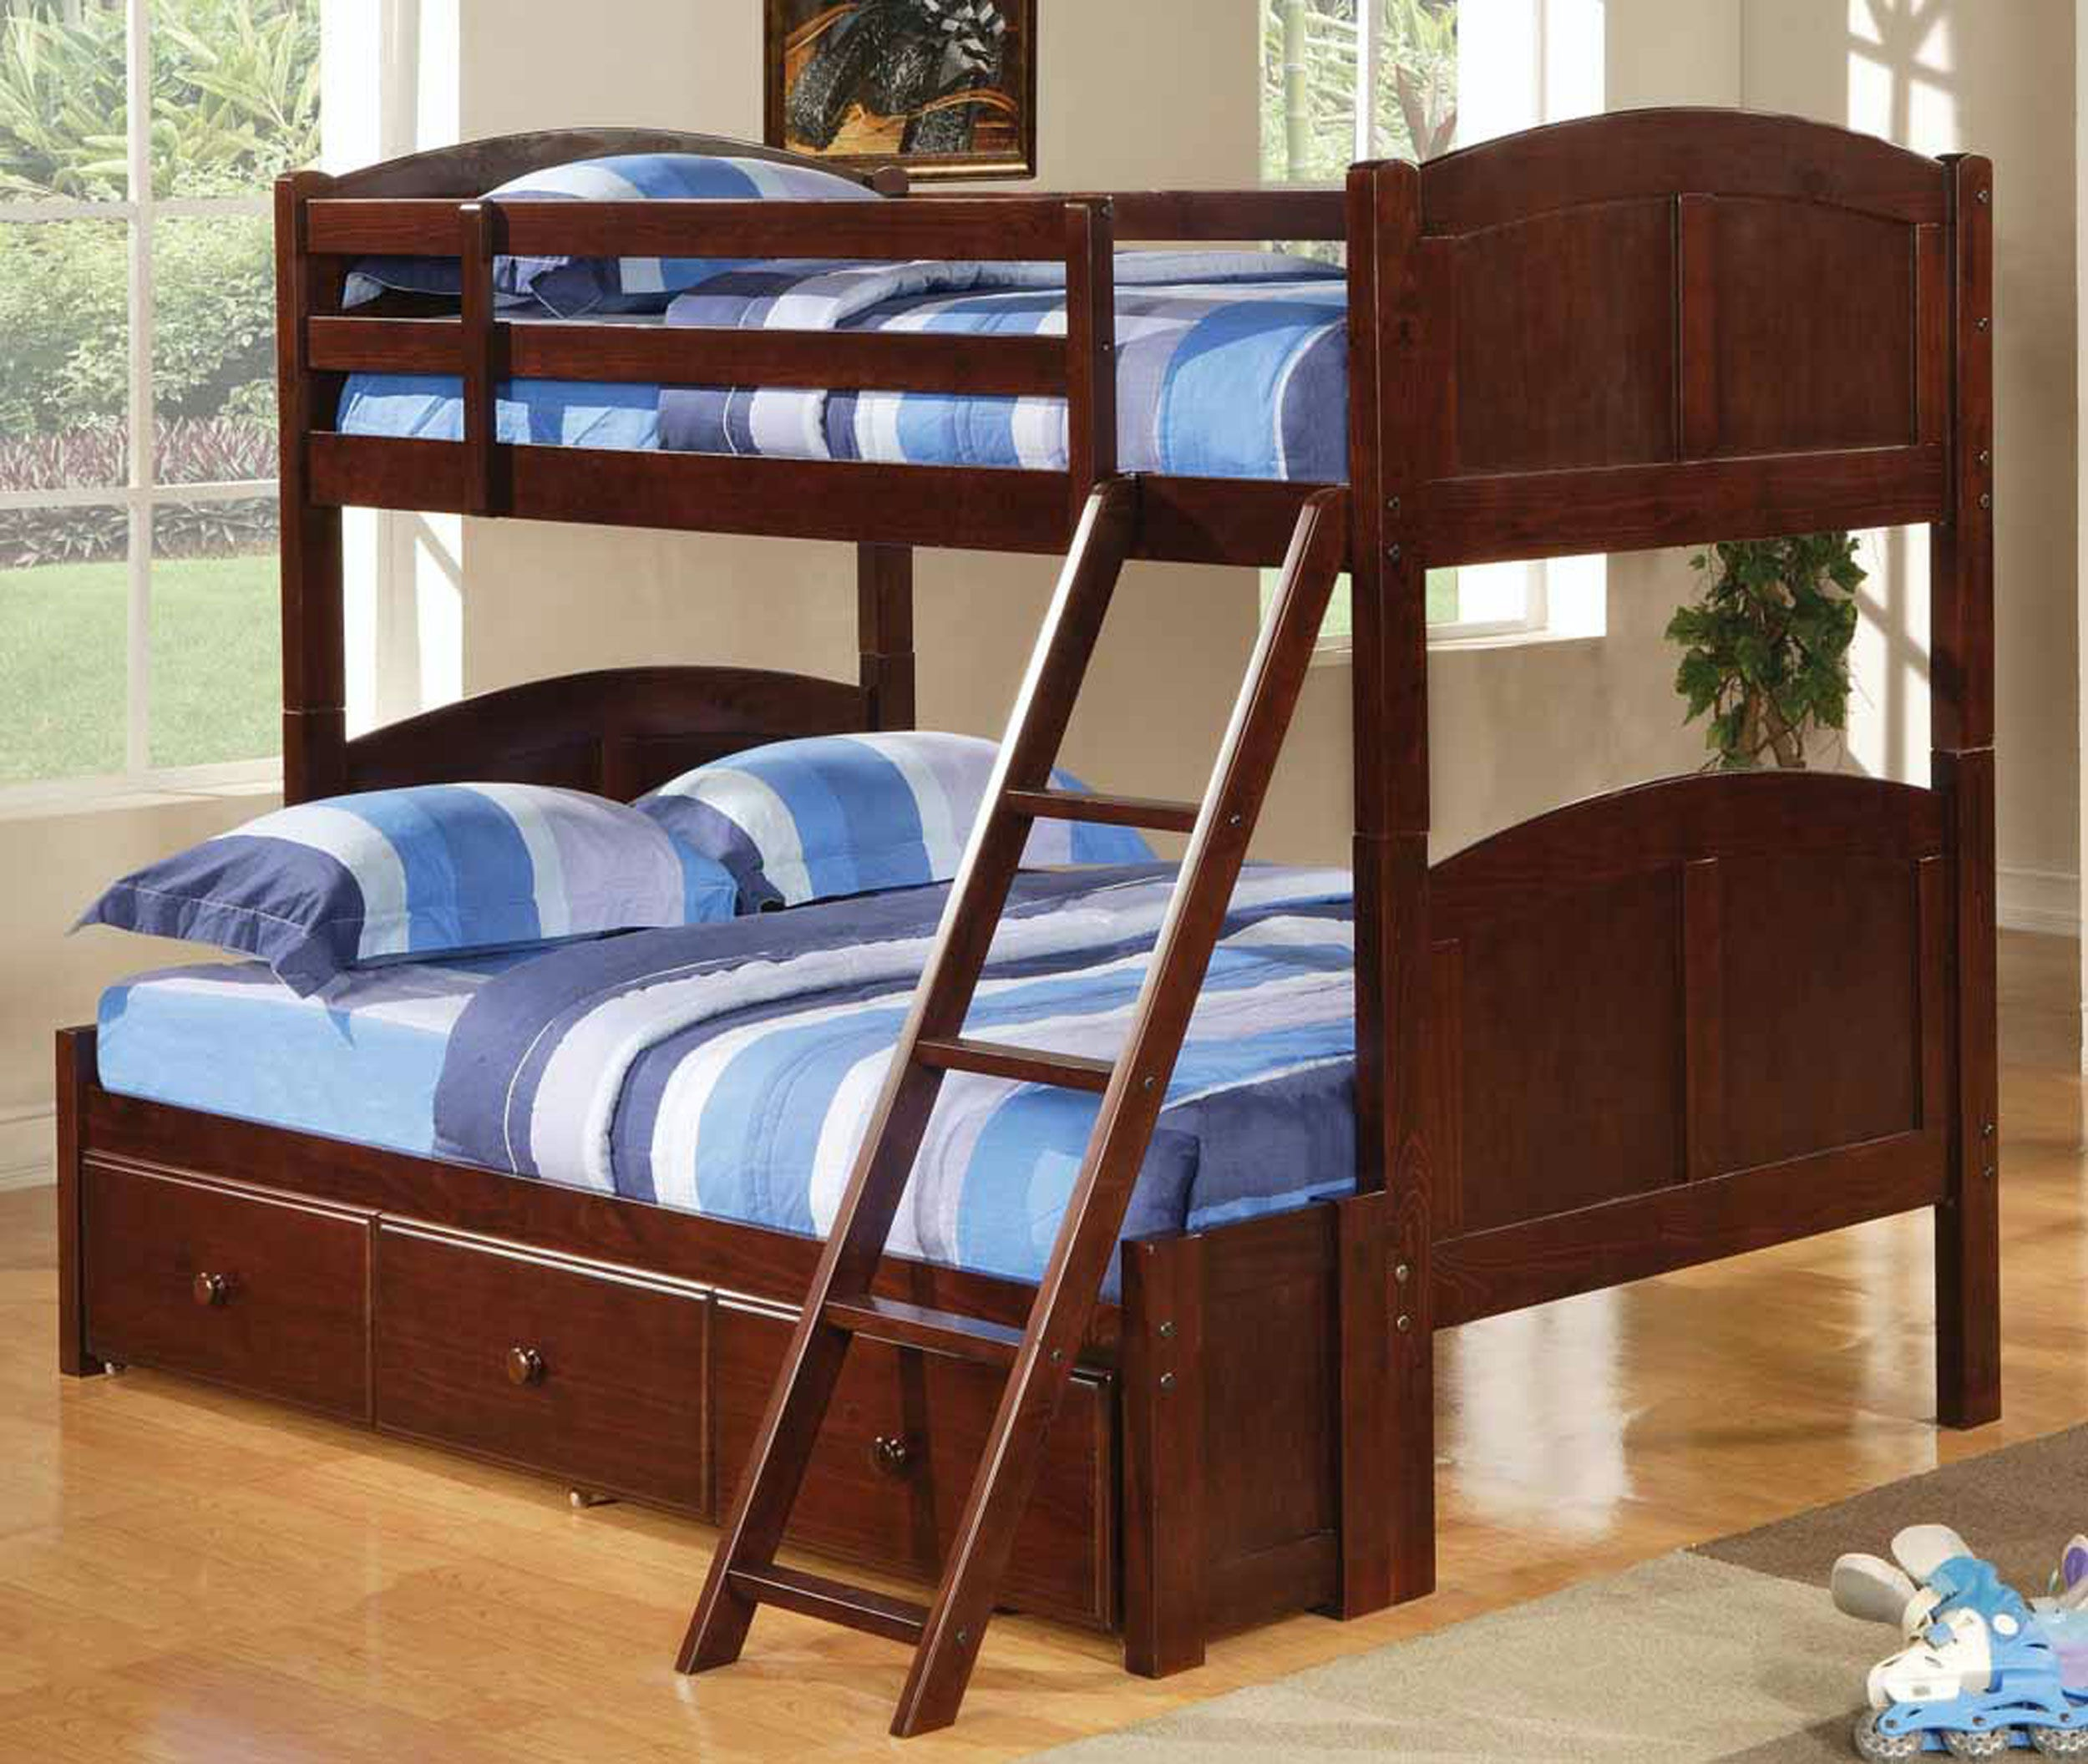 Coaster Youth Bunk Bed 460212b1 Furniture Marketplace Greenville Sc